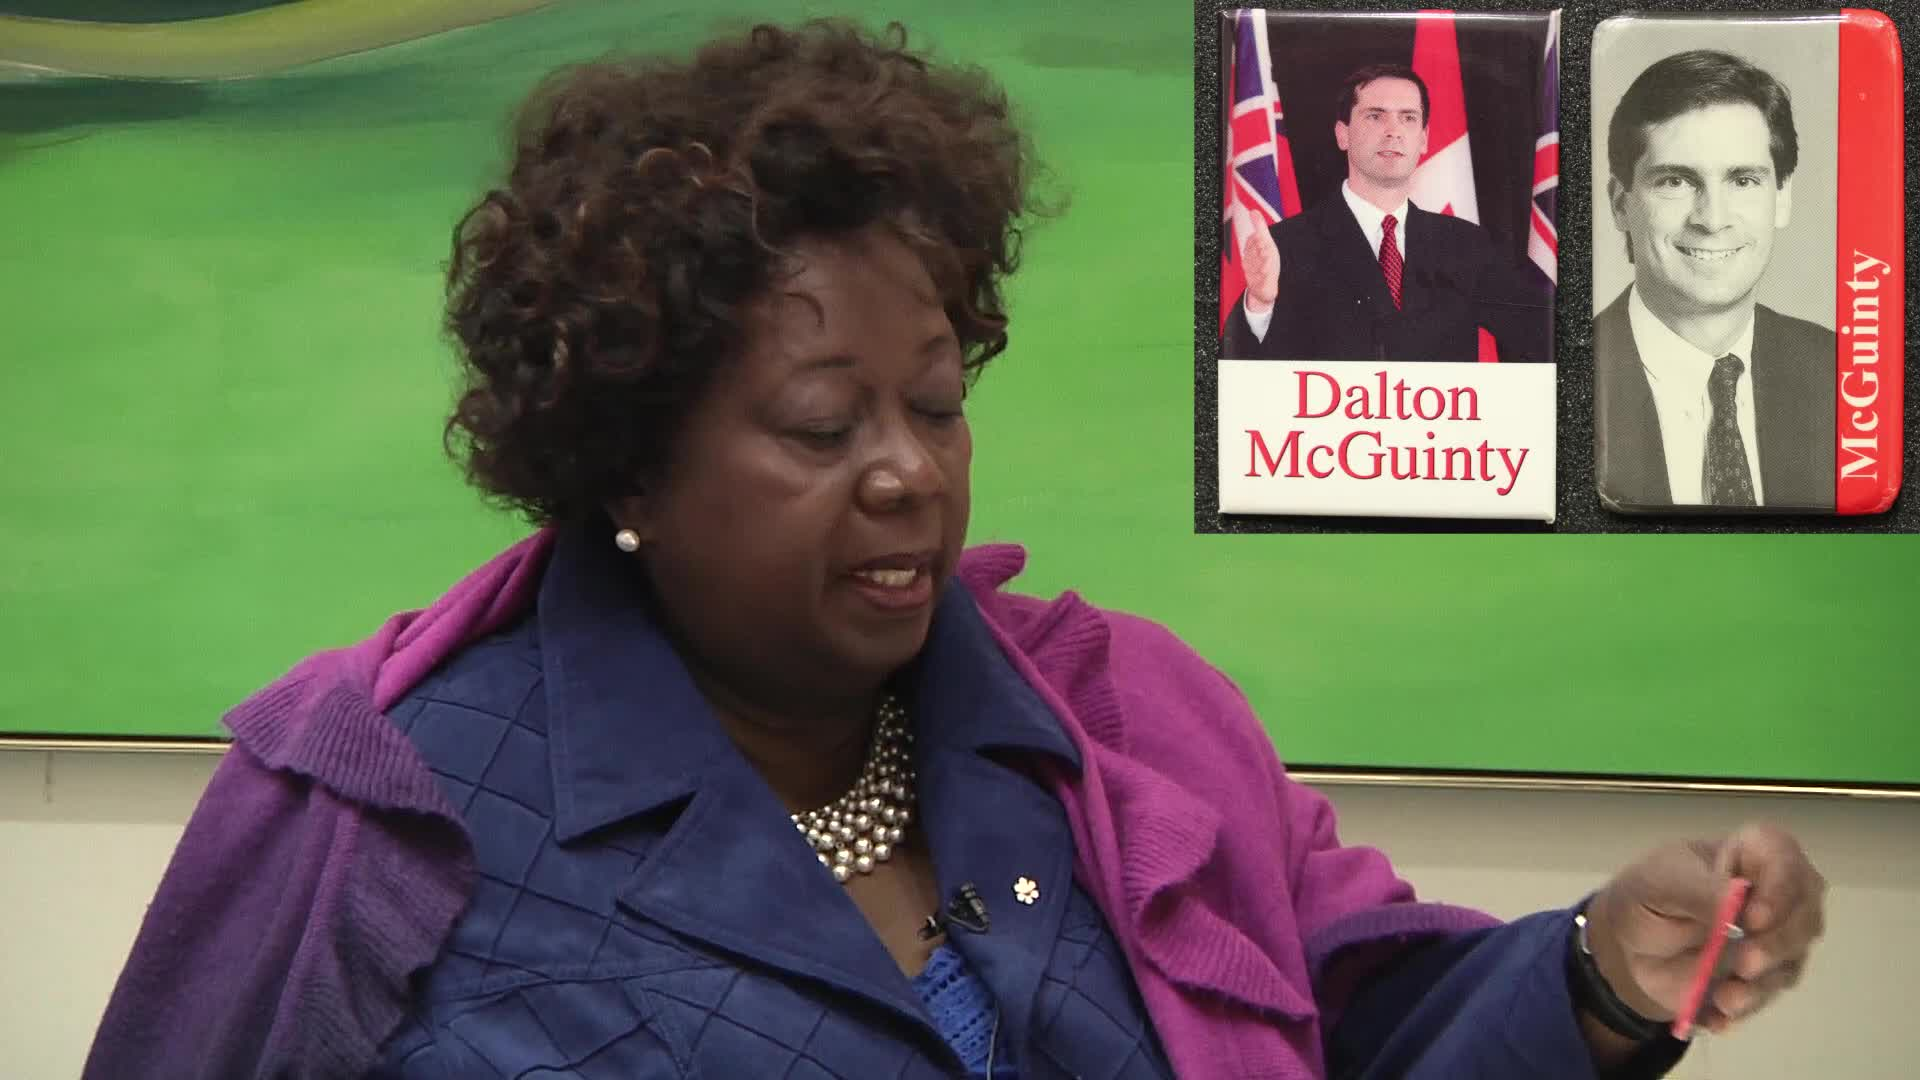 Jean Augustine interview: Dalton McGuinty leadership buttons